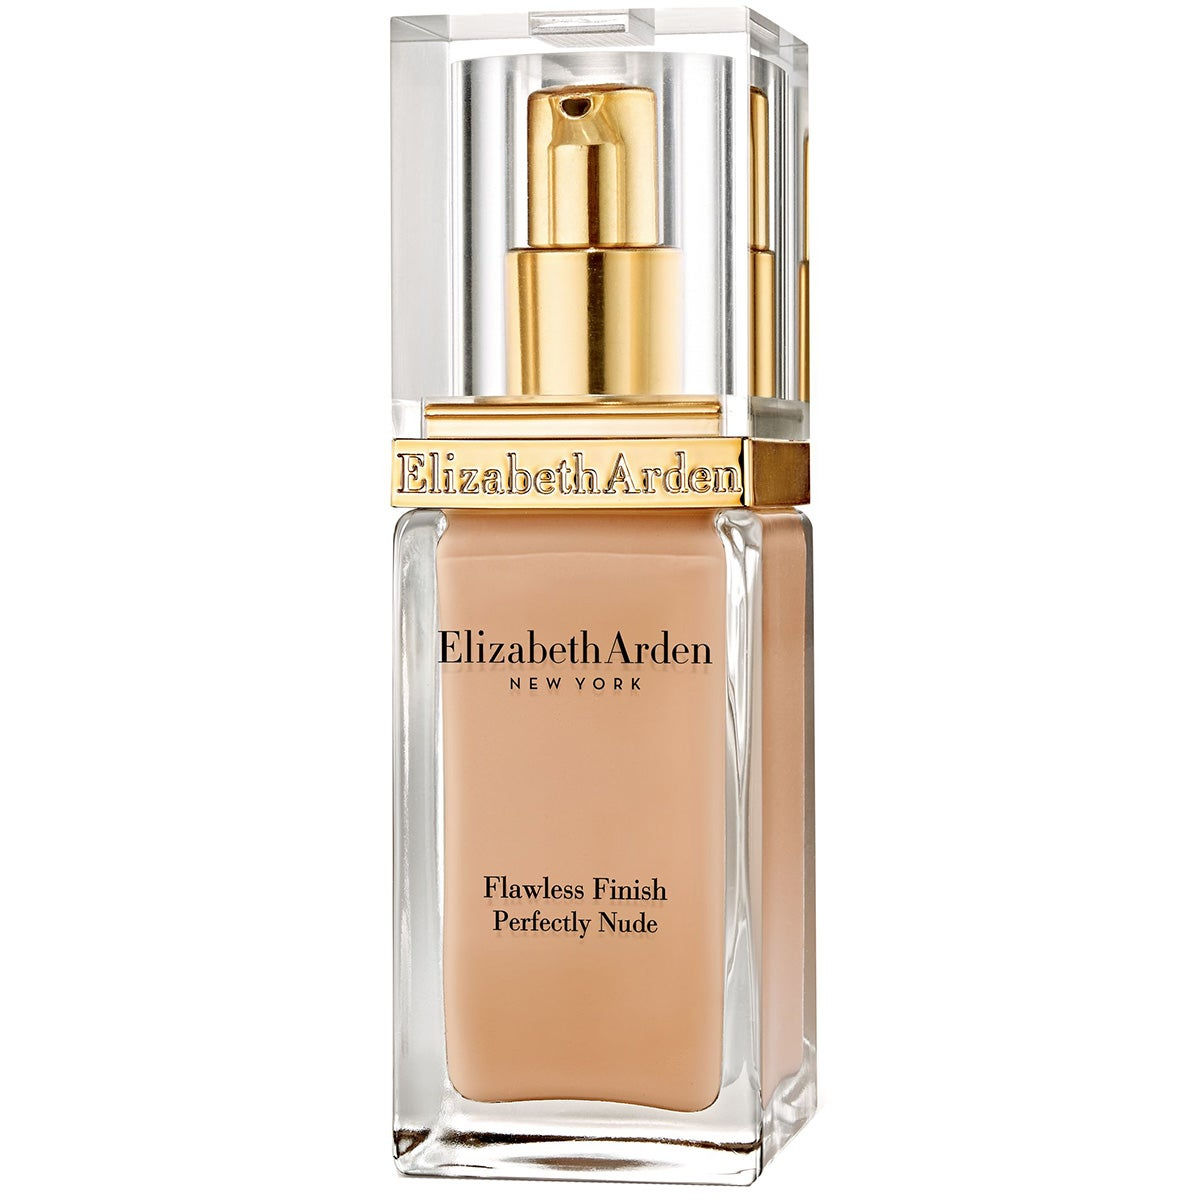 Elizabeth Arden Flawless Finish Perfectly Nude Makeup SPF 15